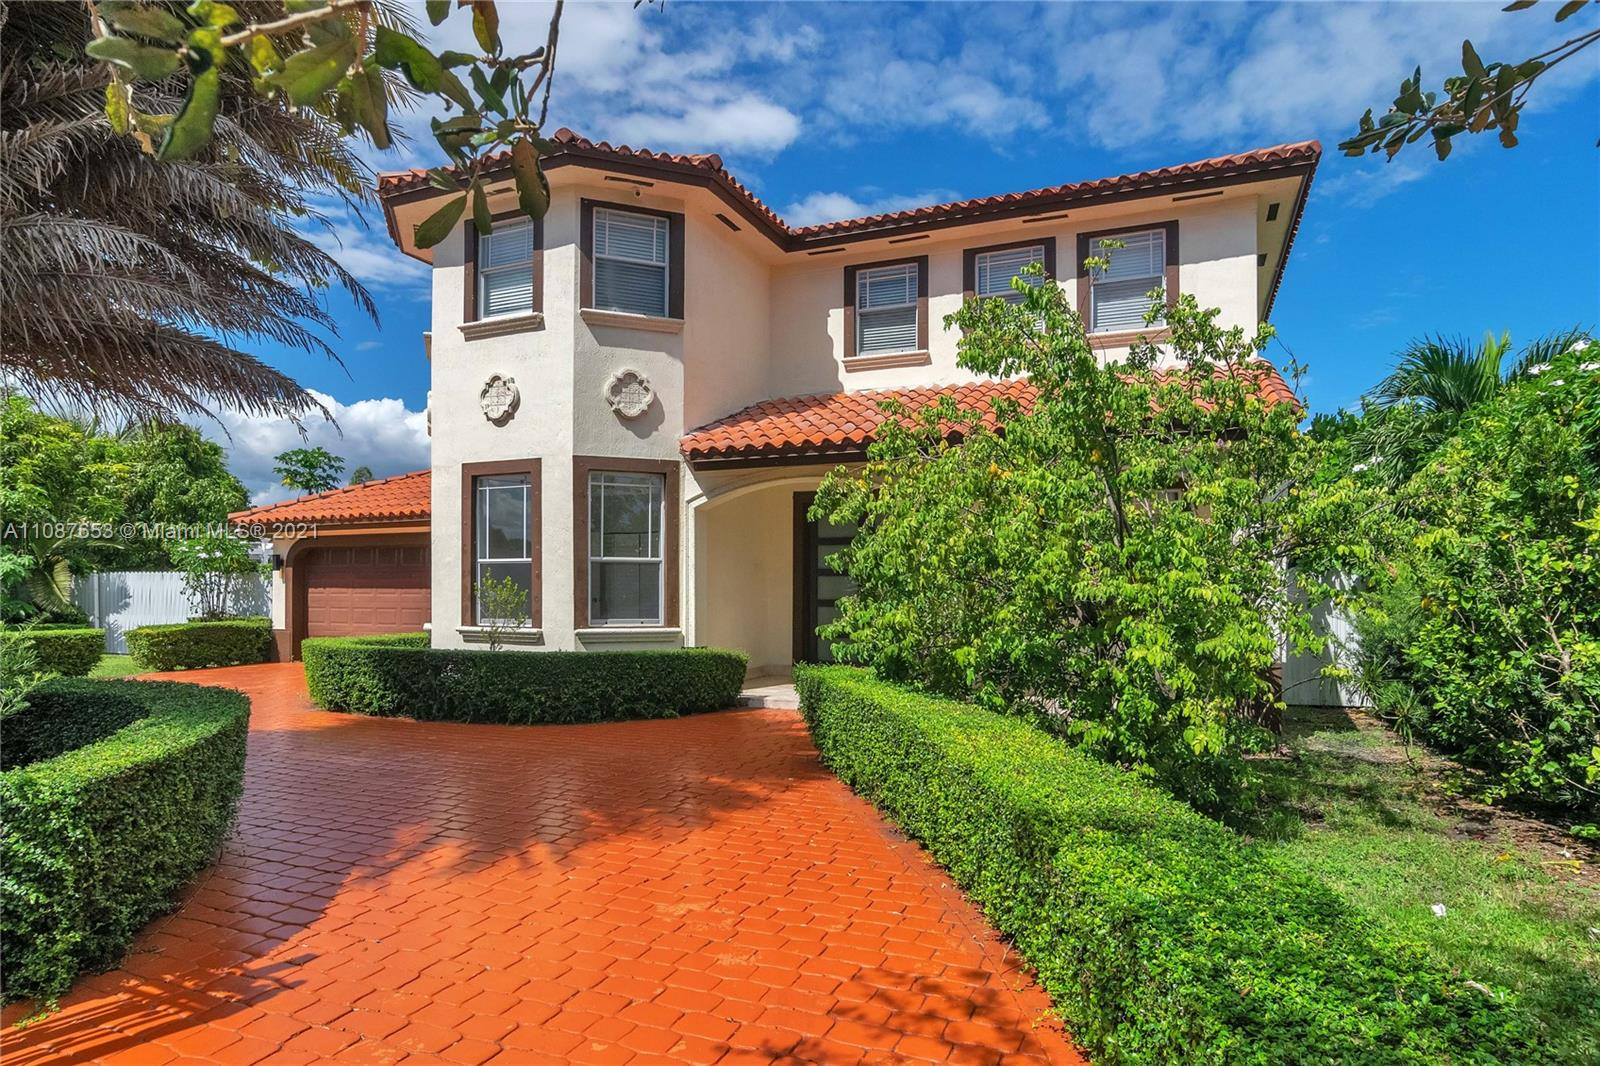 5 BEDROOM AND 3.5 BATH, FULL 2 GARAGE , AND CUSTOM BUILT POOL. GREAT QUIET LOCATION IN PALMETTO BAY WITH GREAT SCHOOLS.  HOUSE IS BEING RENTED AS IS.